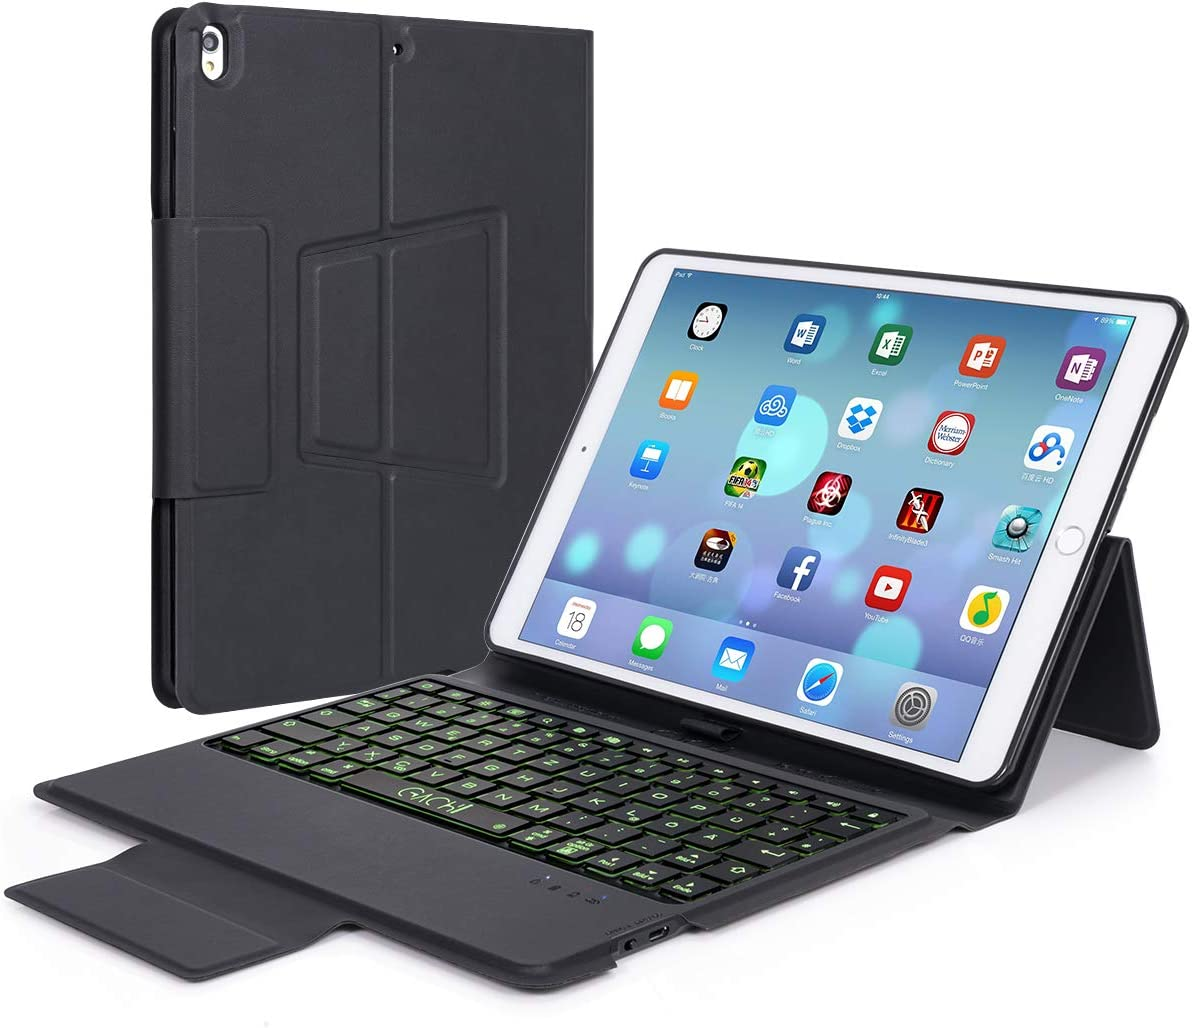 "iPad Keyboard Case 9.7 for iPad Pro 9.7"" 2018 (6th Gen) /2017 (5th Gen), iPad Air 2/Air 1, iPad 6th Generation Cases with Keyboard,Wireless Keyboard for iPad Cases with Pencil Holder"